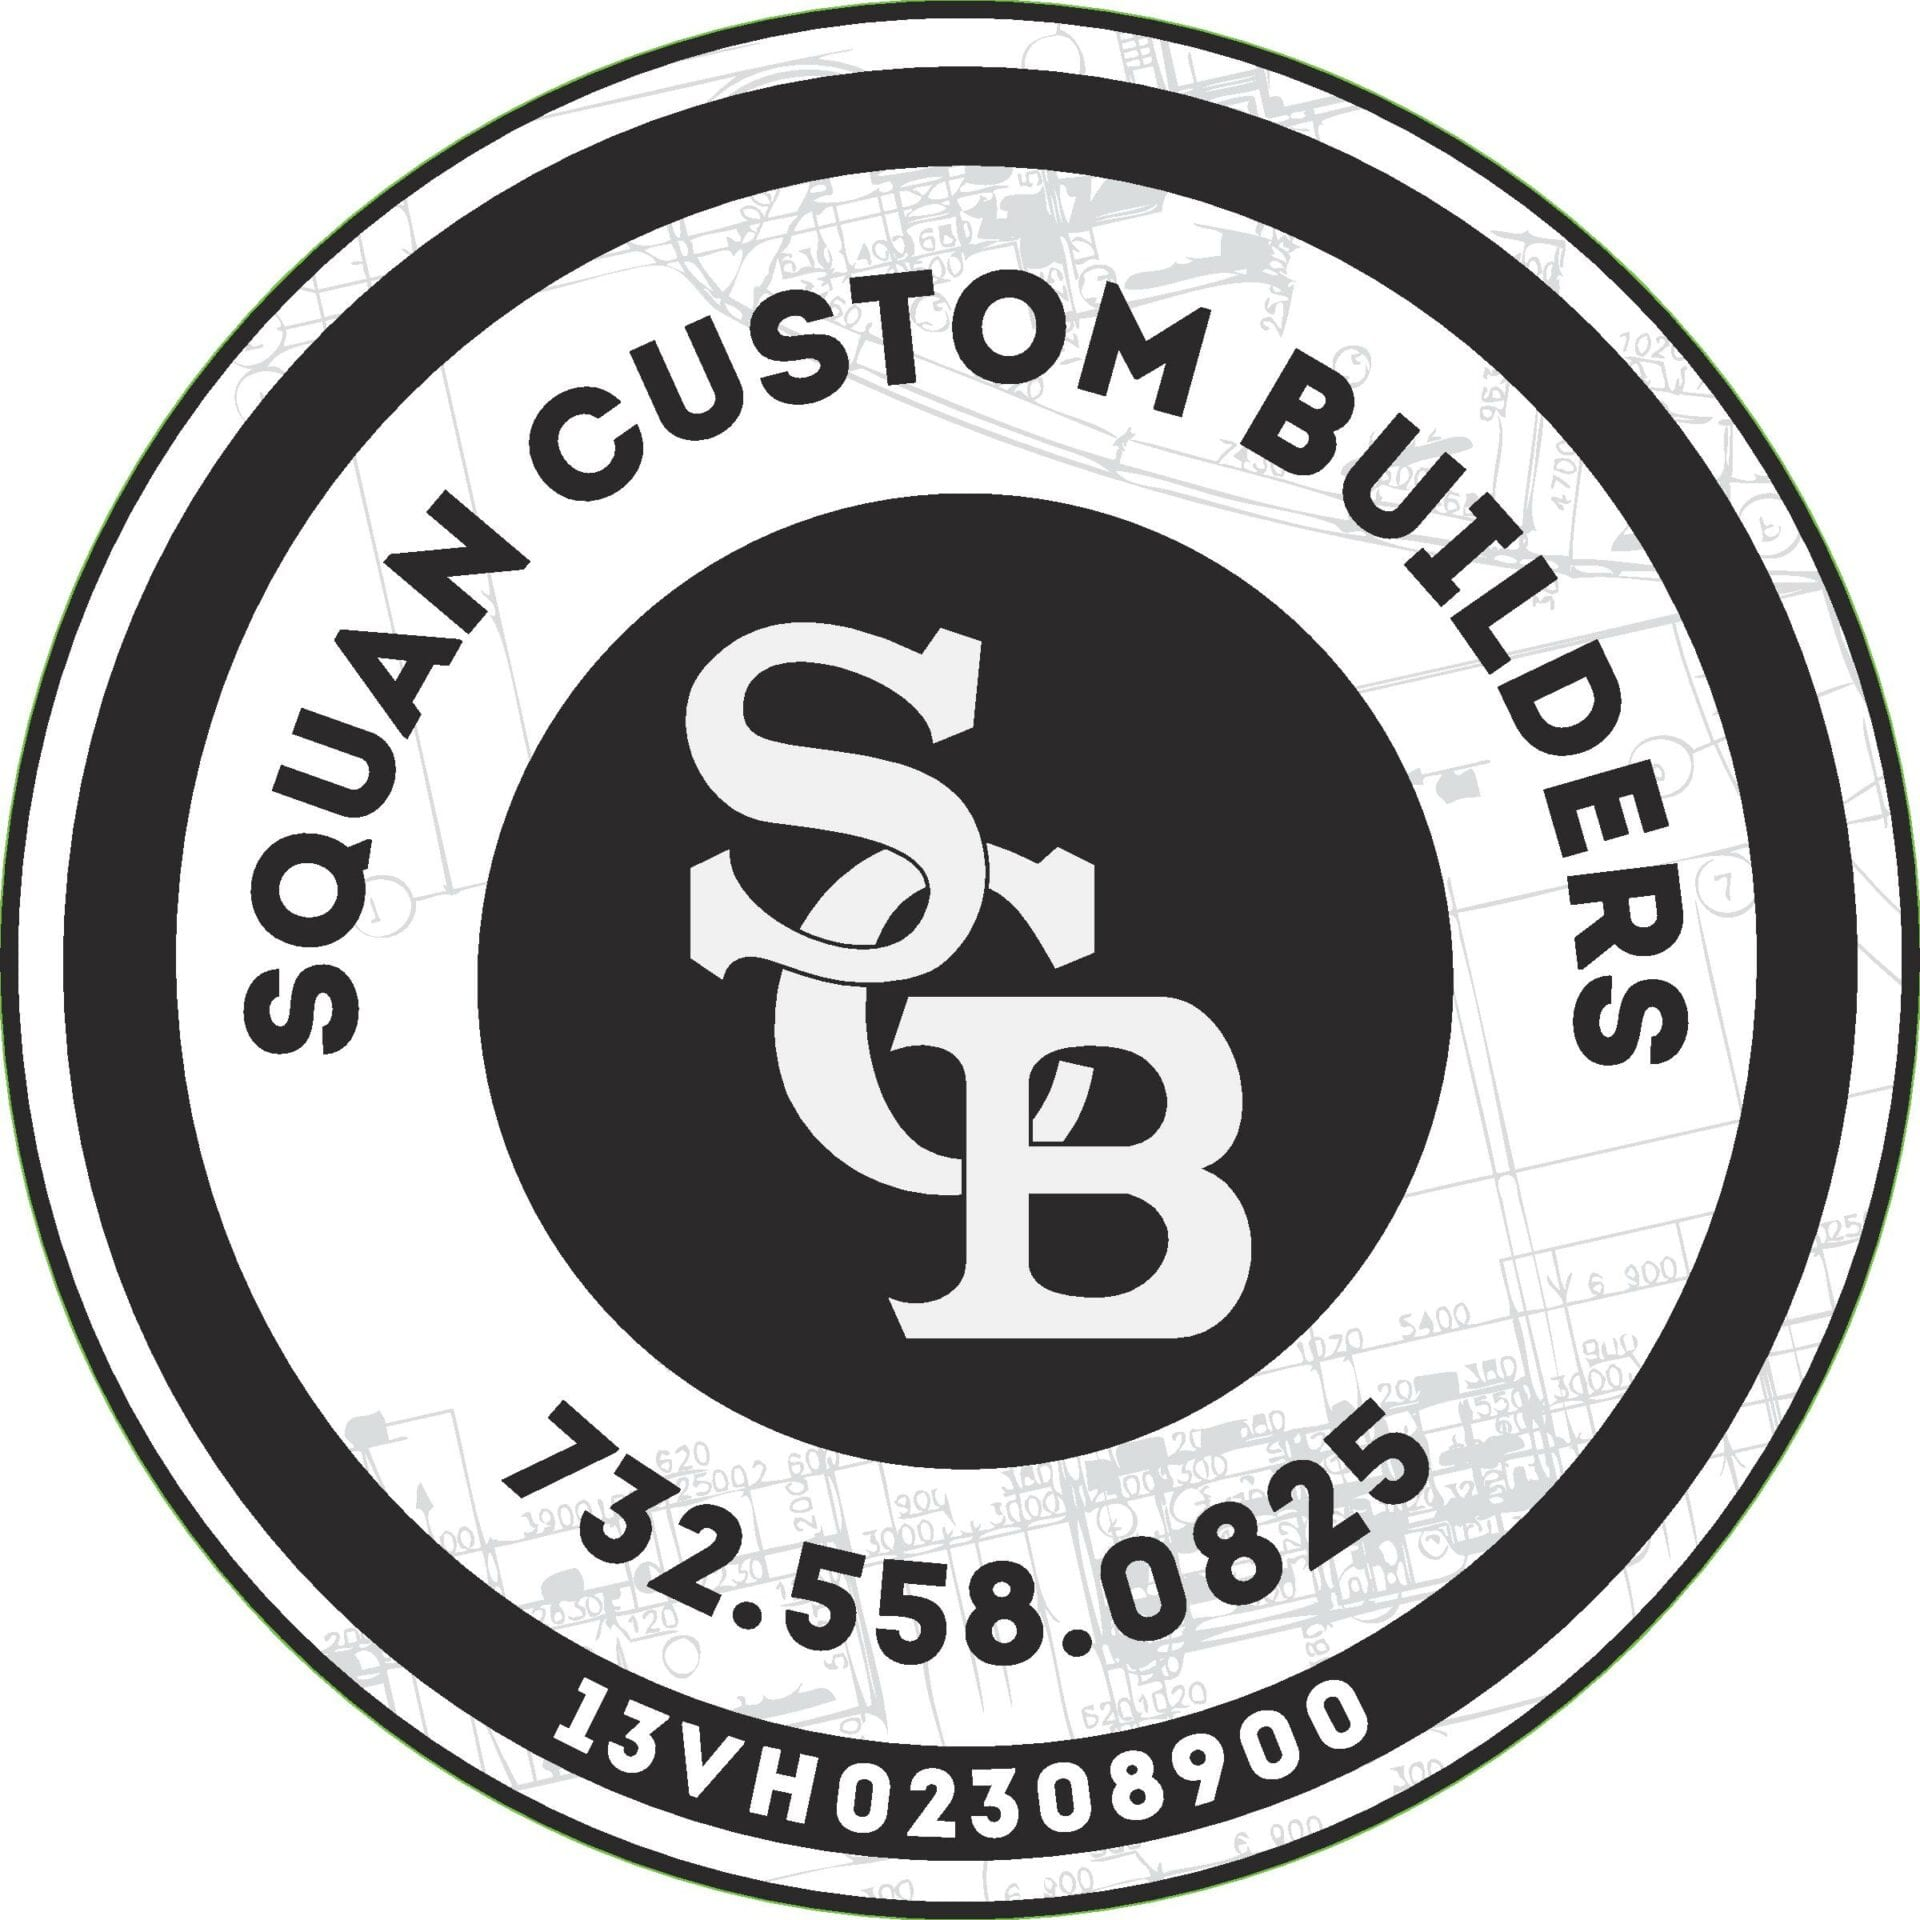 SquanCustomBuilders_Decal[8in.]